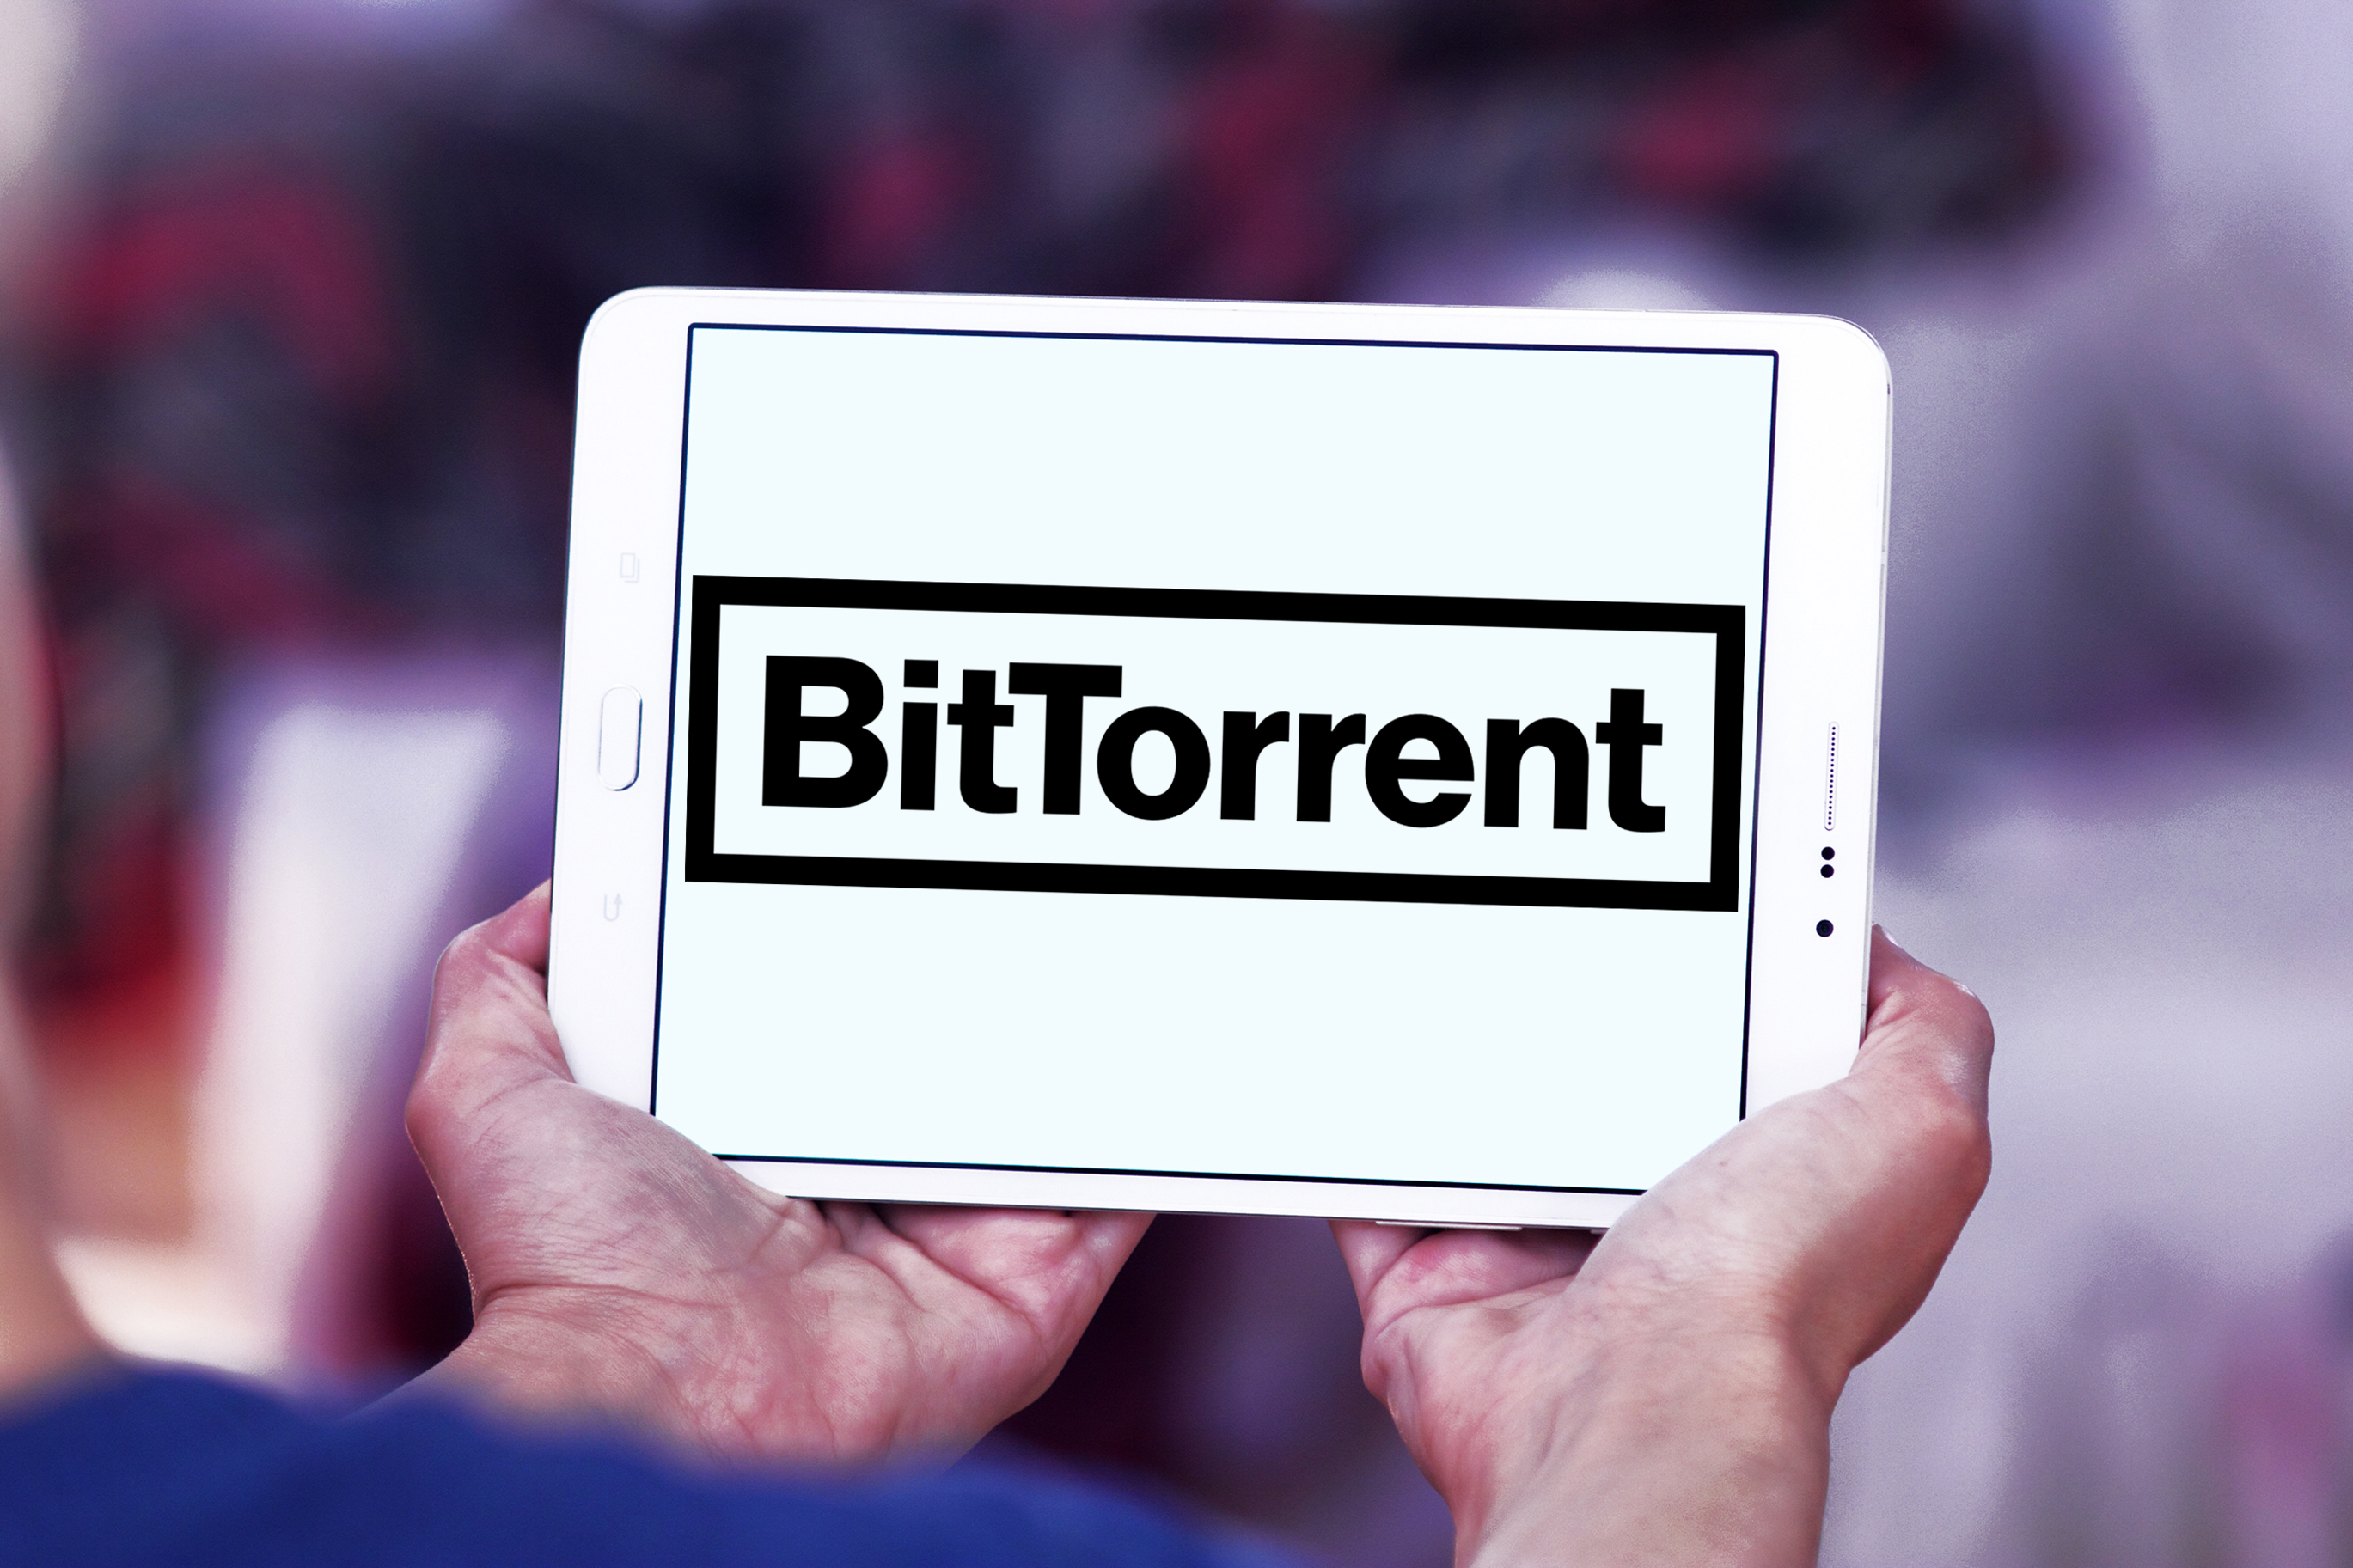 Tron to acquire BitTorrent Inc, a new positive news for the crypto